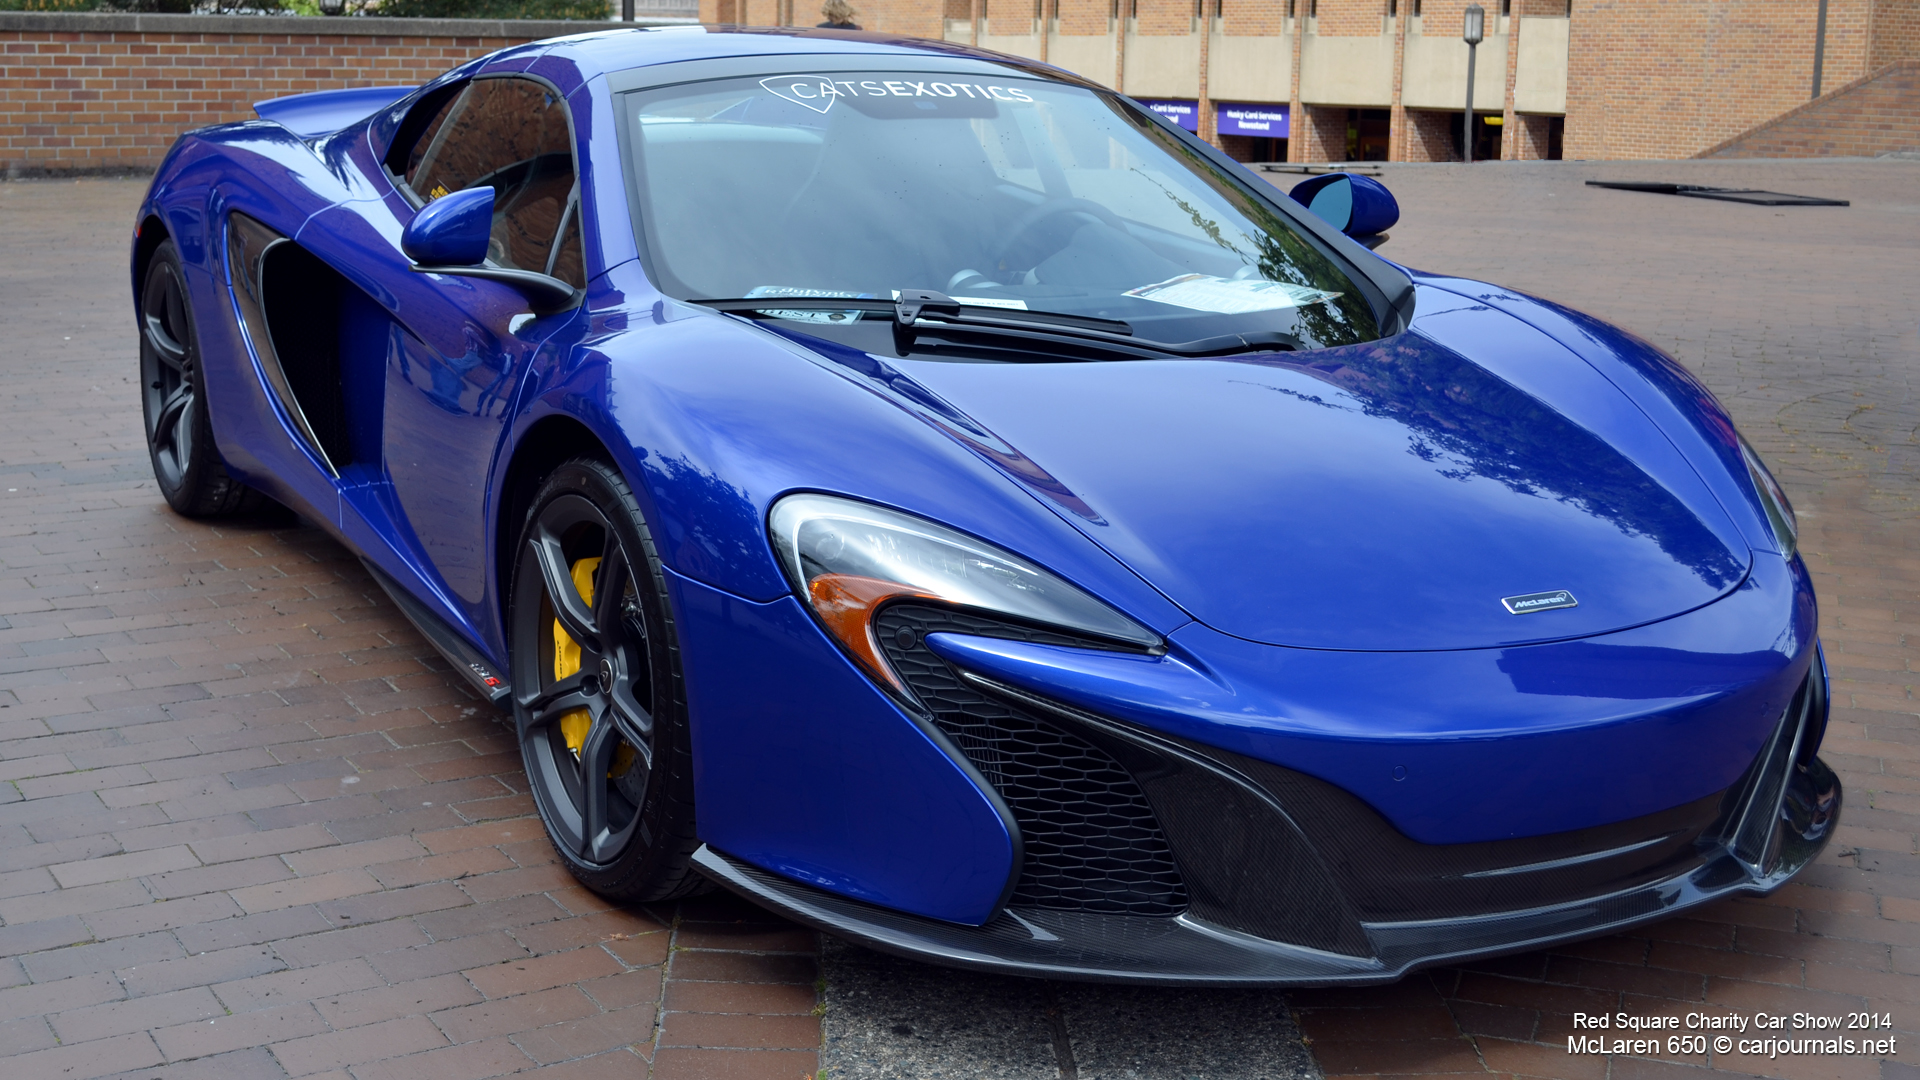 McLaren 650 at Red Square Charity Car Show 2014